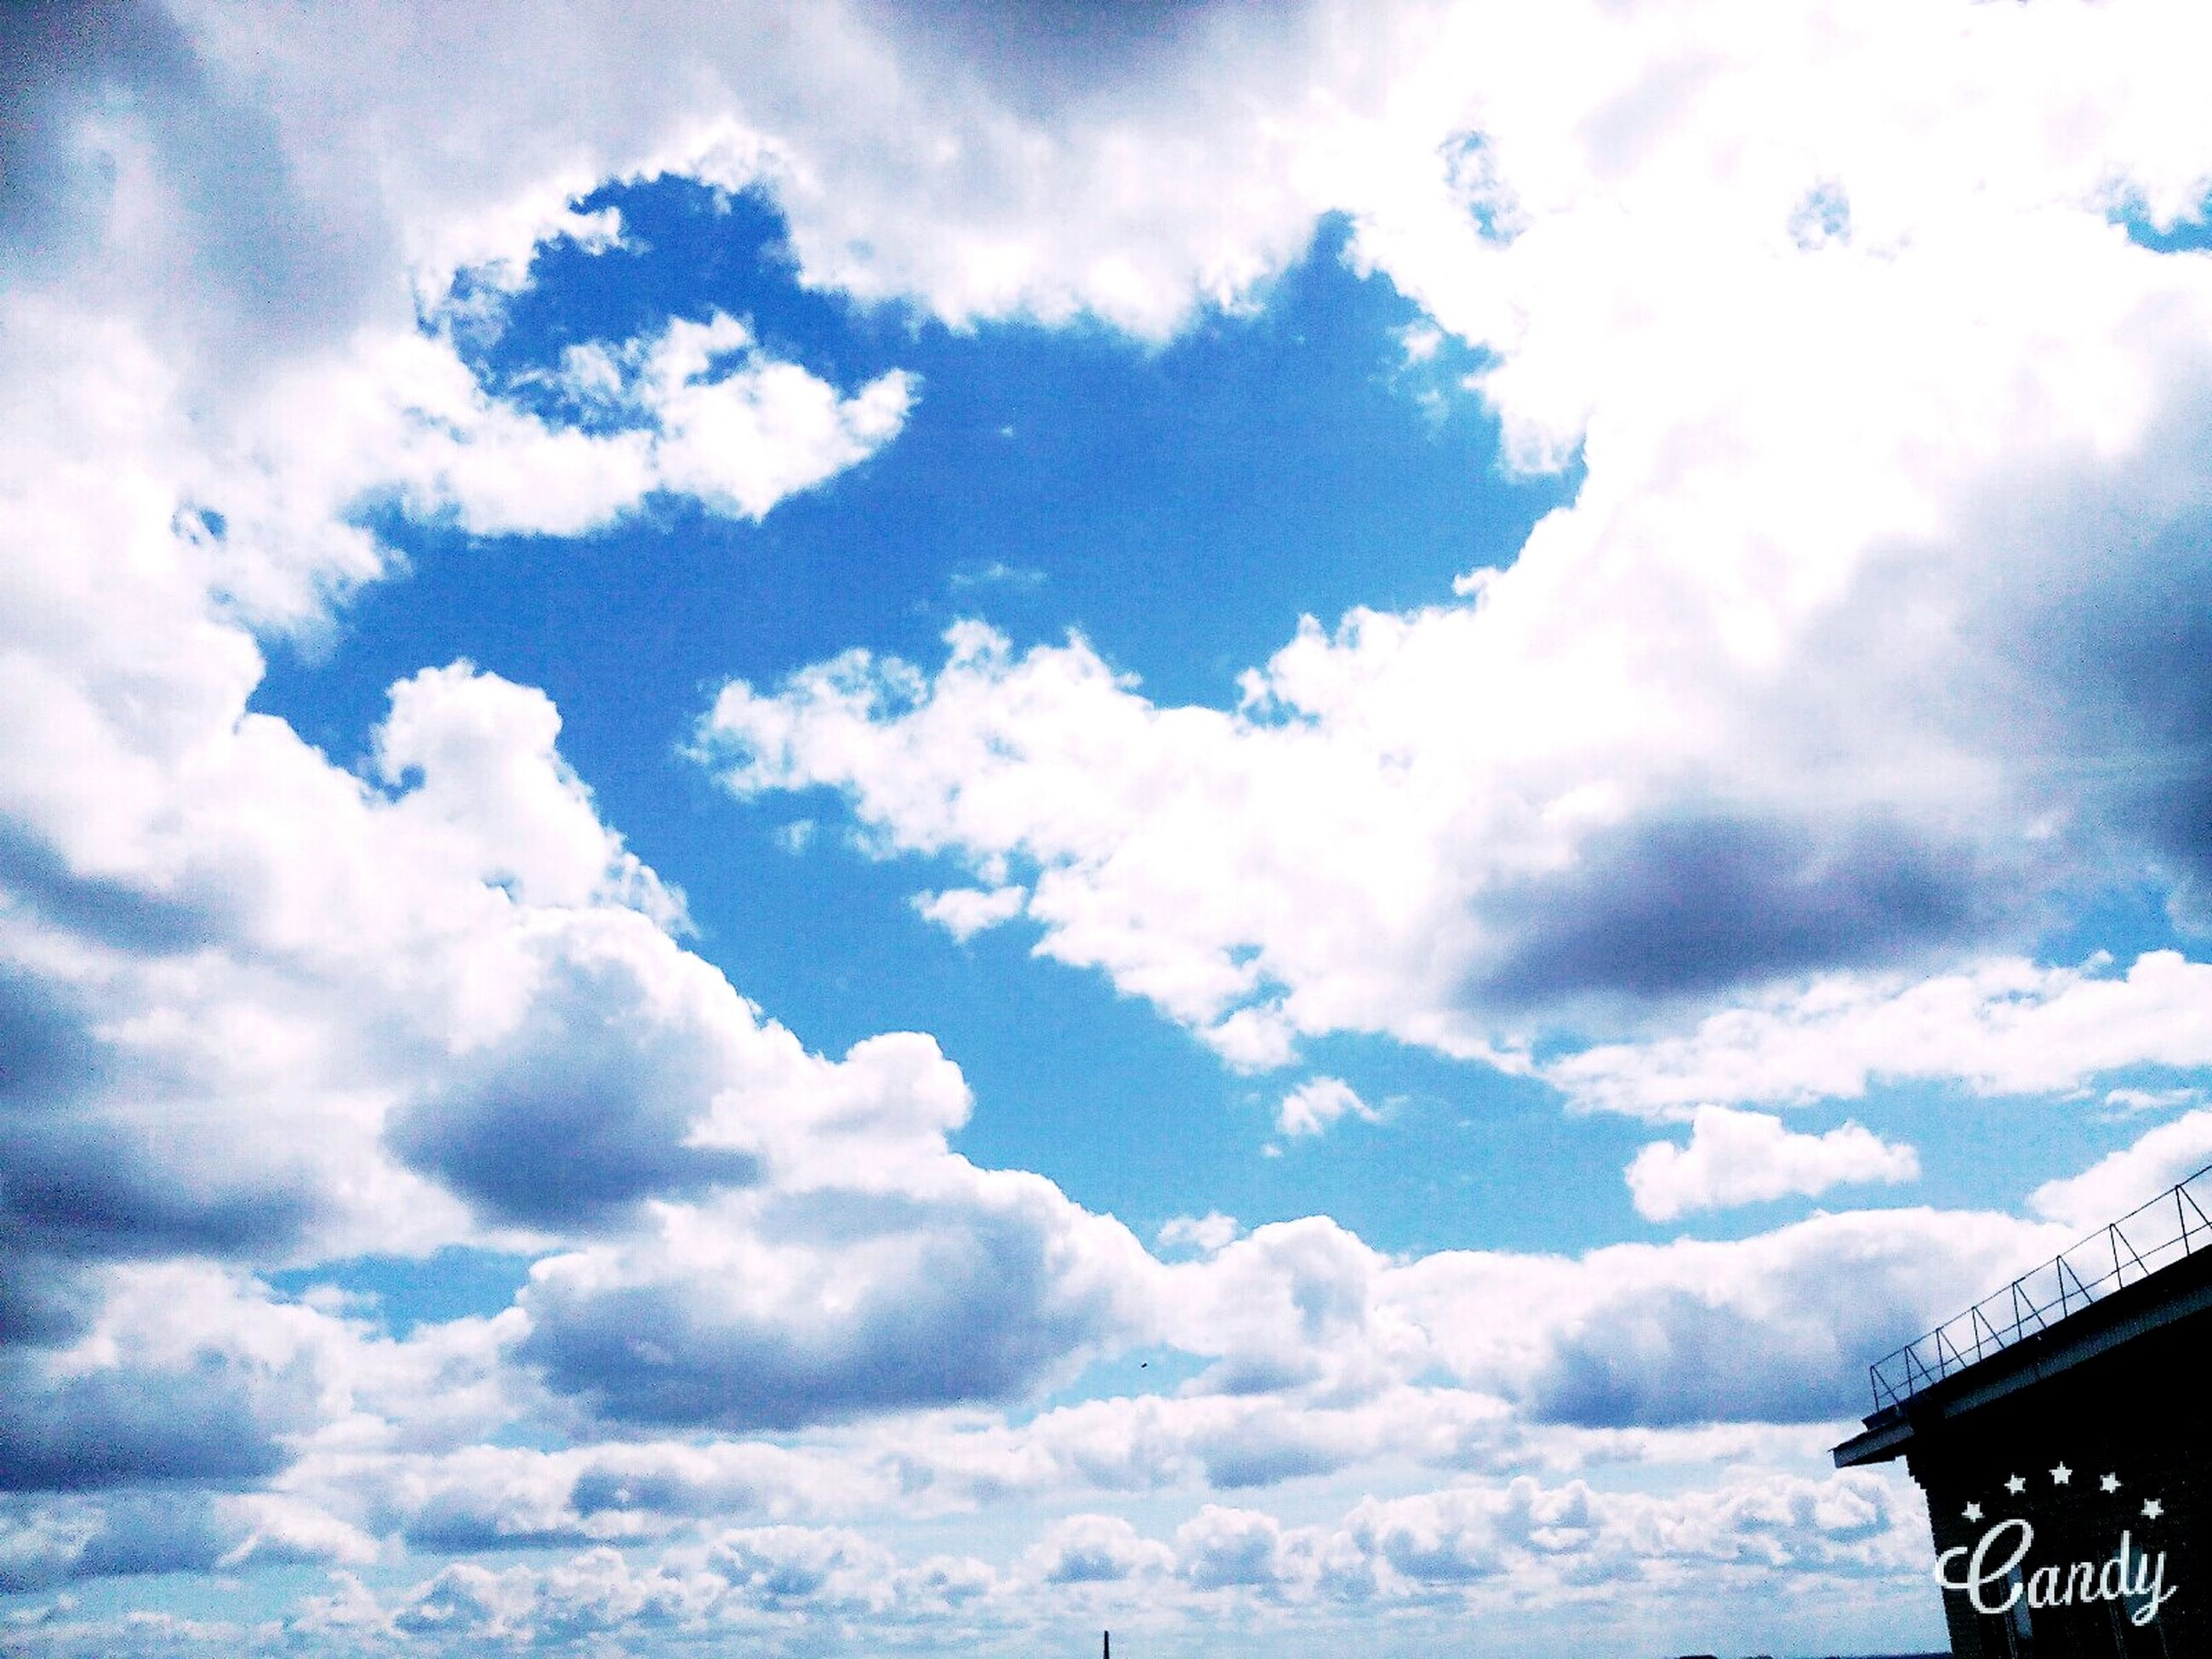 sky, cloud - sky, low angle view, cloudy, cloud, cloudscape, weather, beauty in nature, scenics, nature, blue, white color, tranquility, outdoors, day, no people, high section, tranquil scene, overcast, idyllic